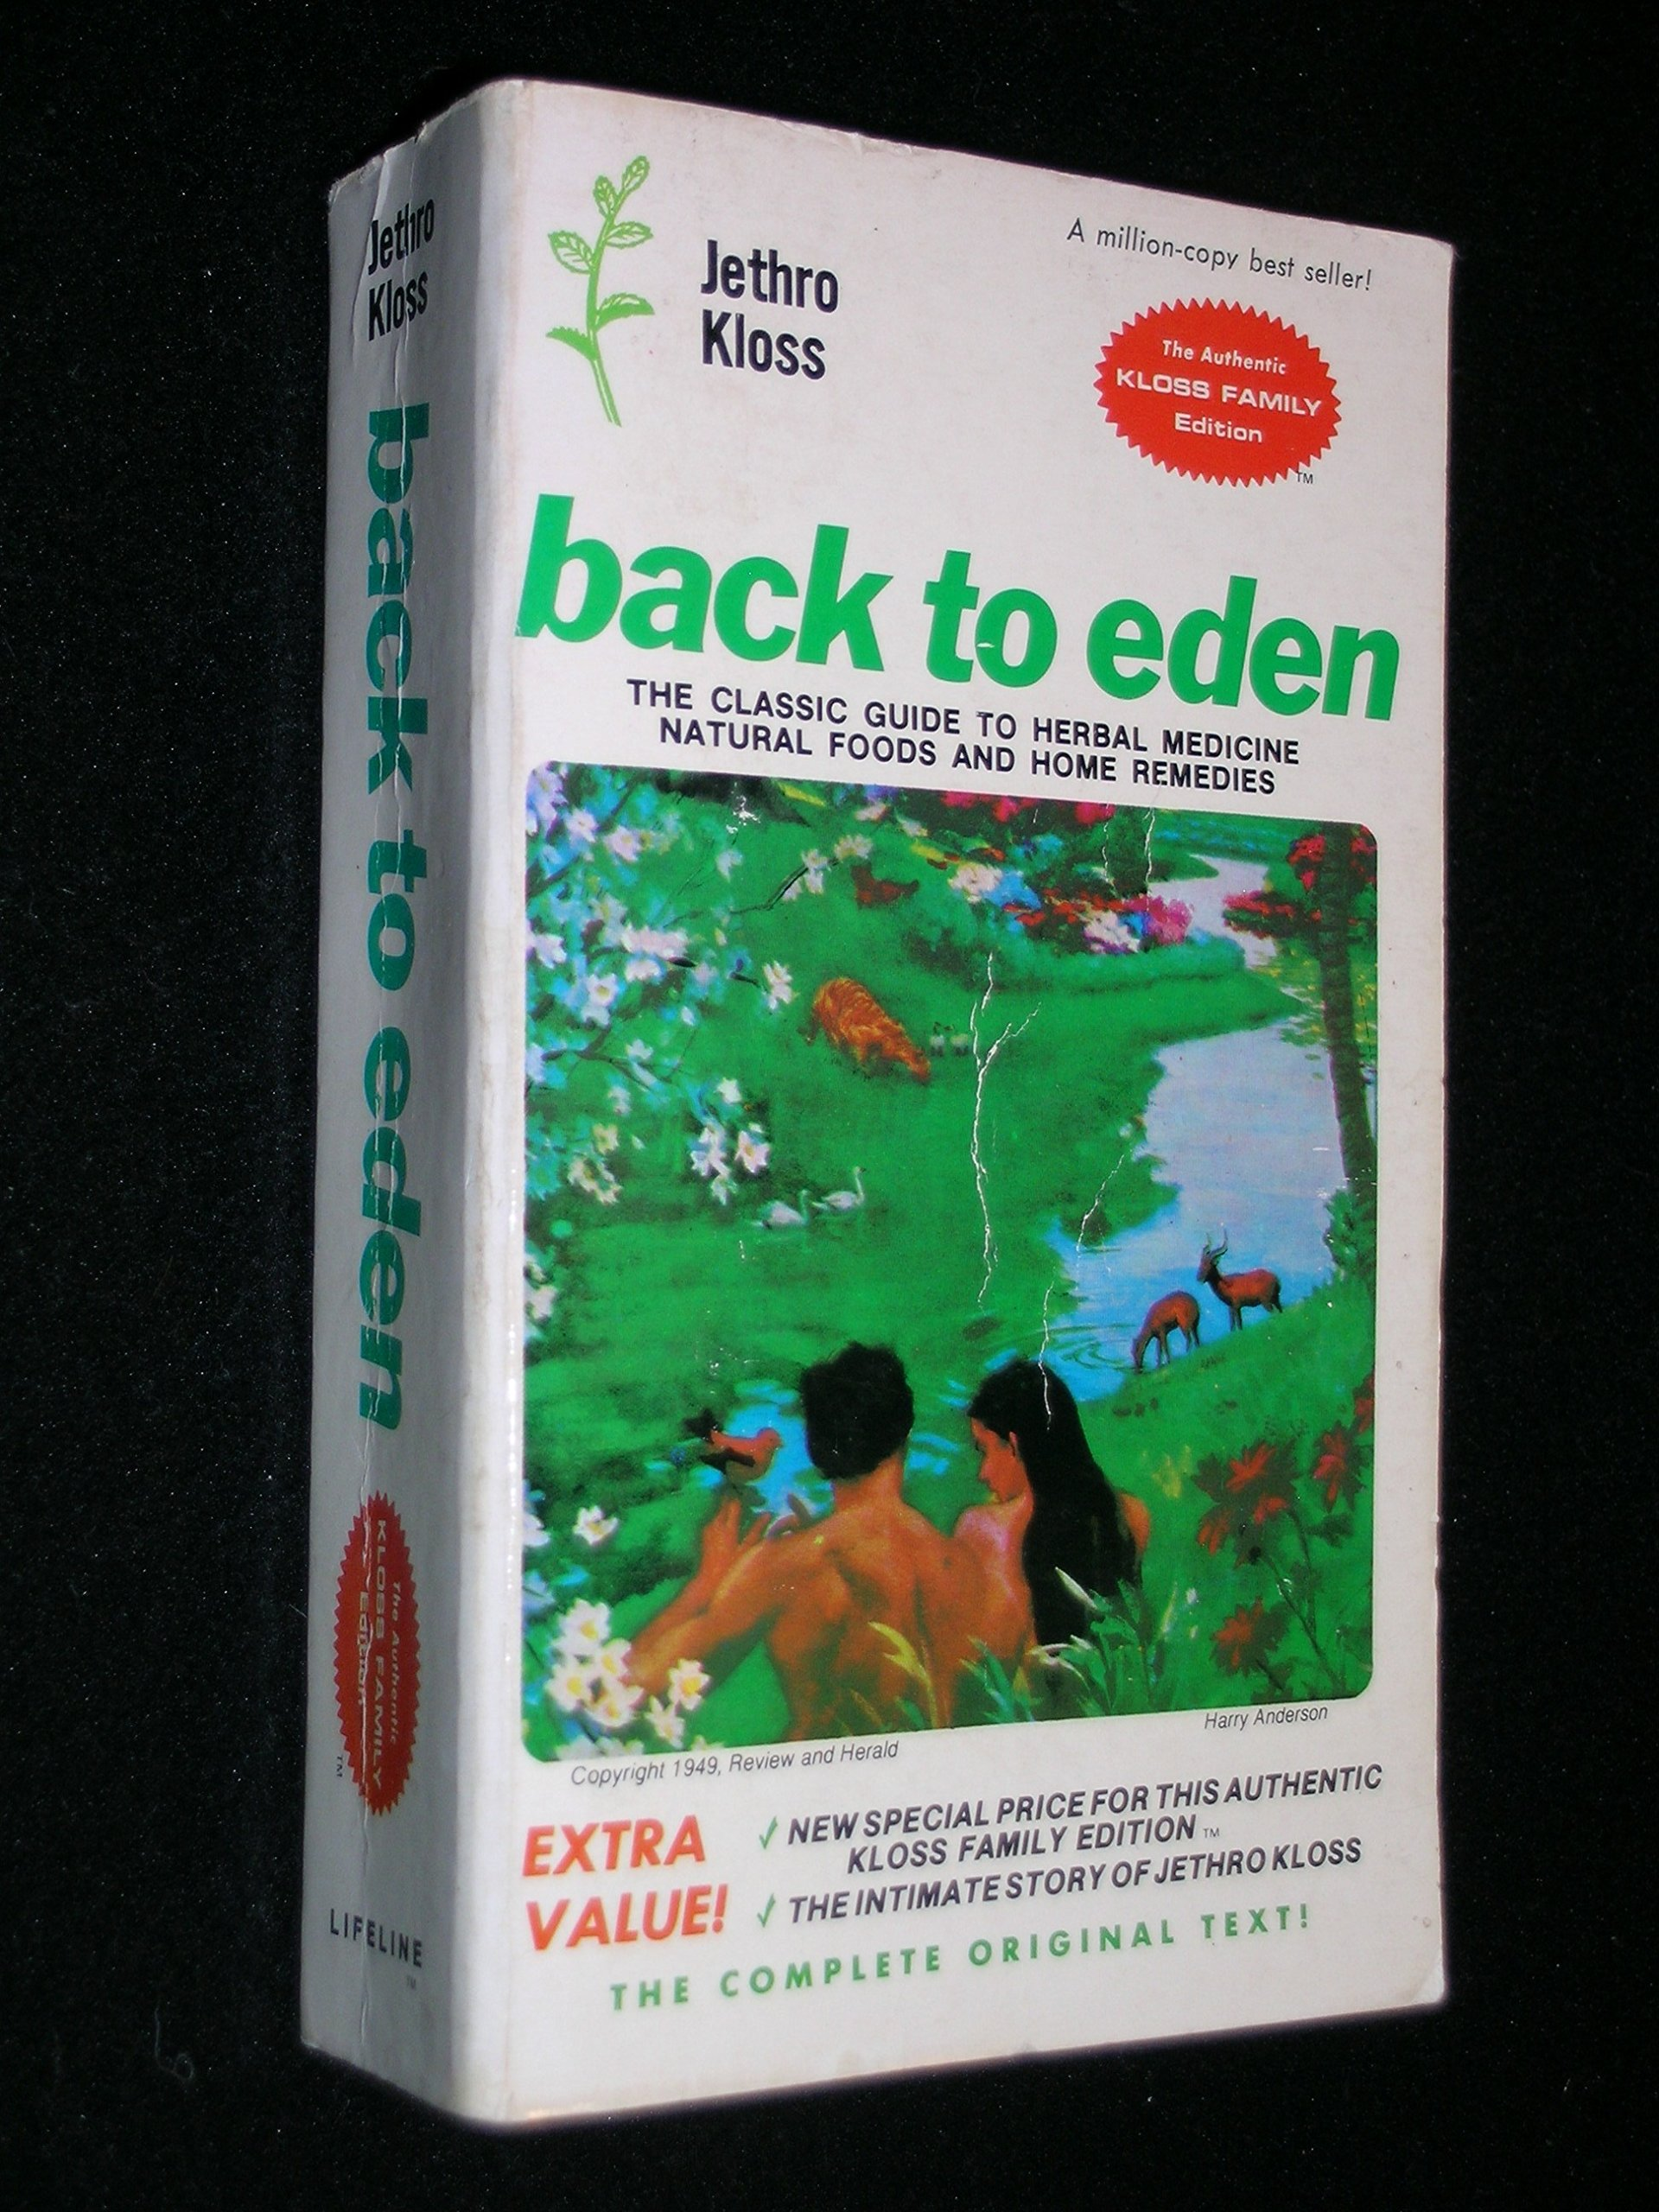 Back to eden classic guide to herbal medicine natural food and back to eden classic guide to herbal medicine natural food and home remedies since 1939 jethro kloss 9780912800127 amazon books fandeluxe Images